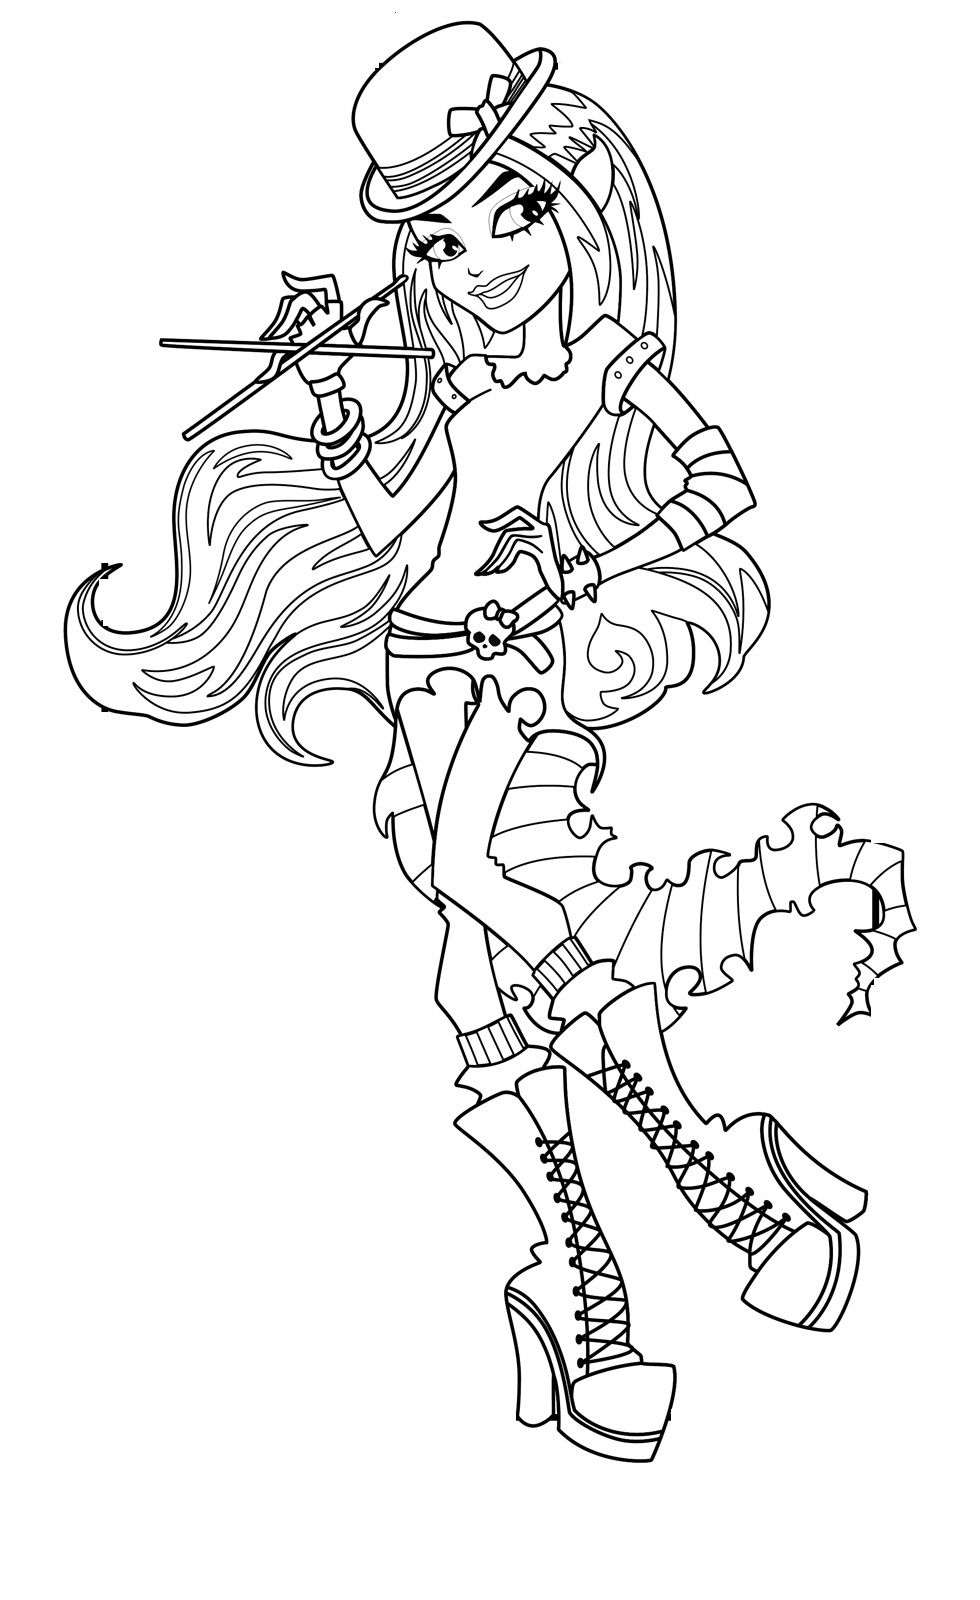 monster high coloring pages to print for free coloring pages monster high coloring pages free and printable print high coloring monster to for free pages